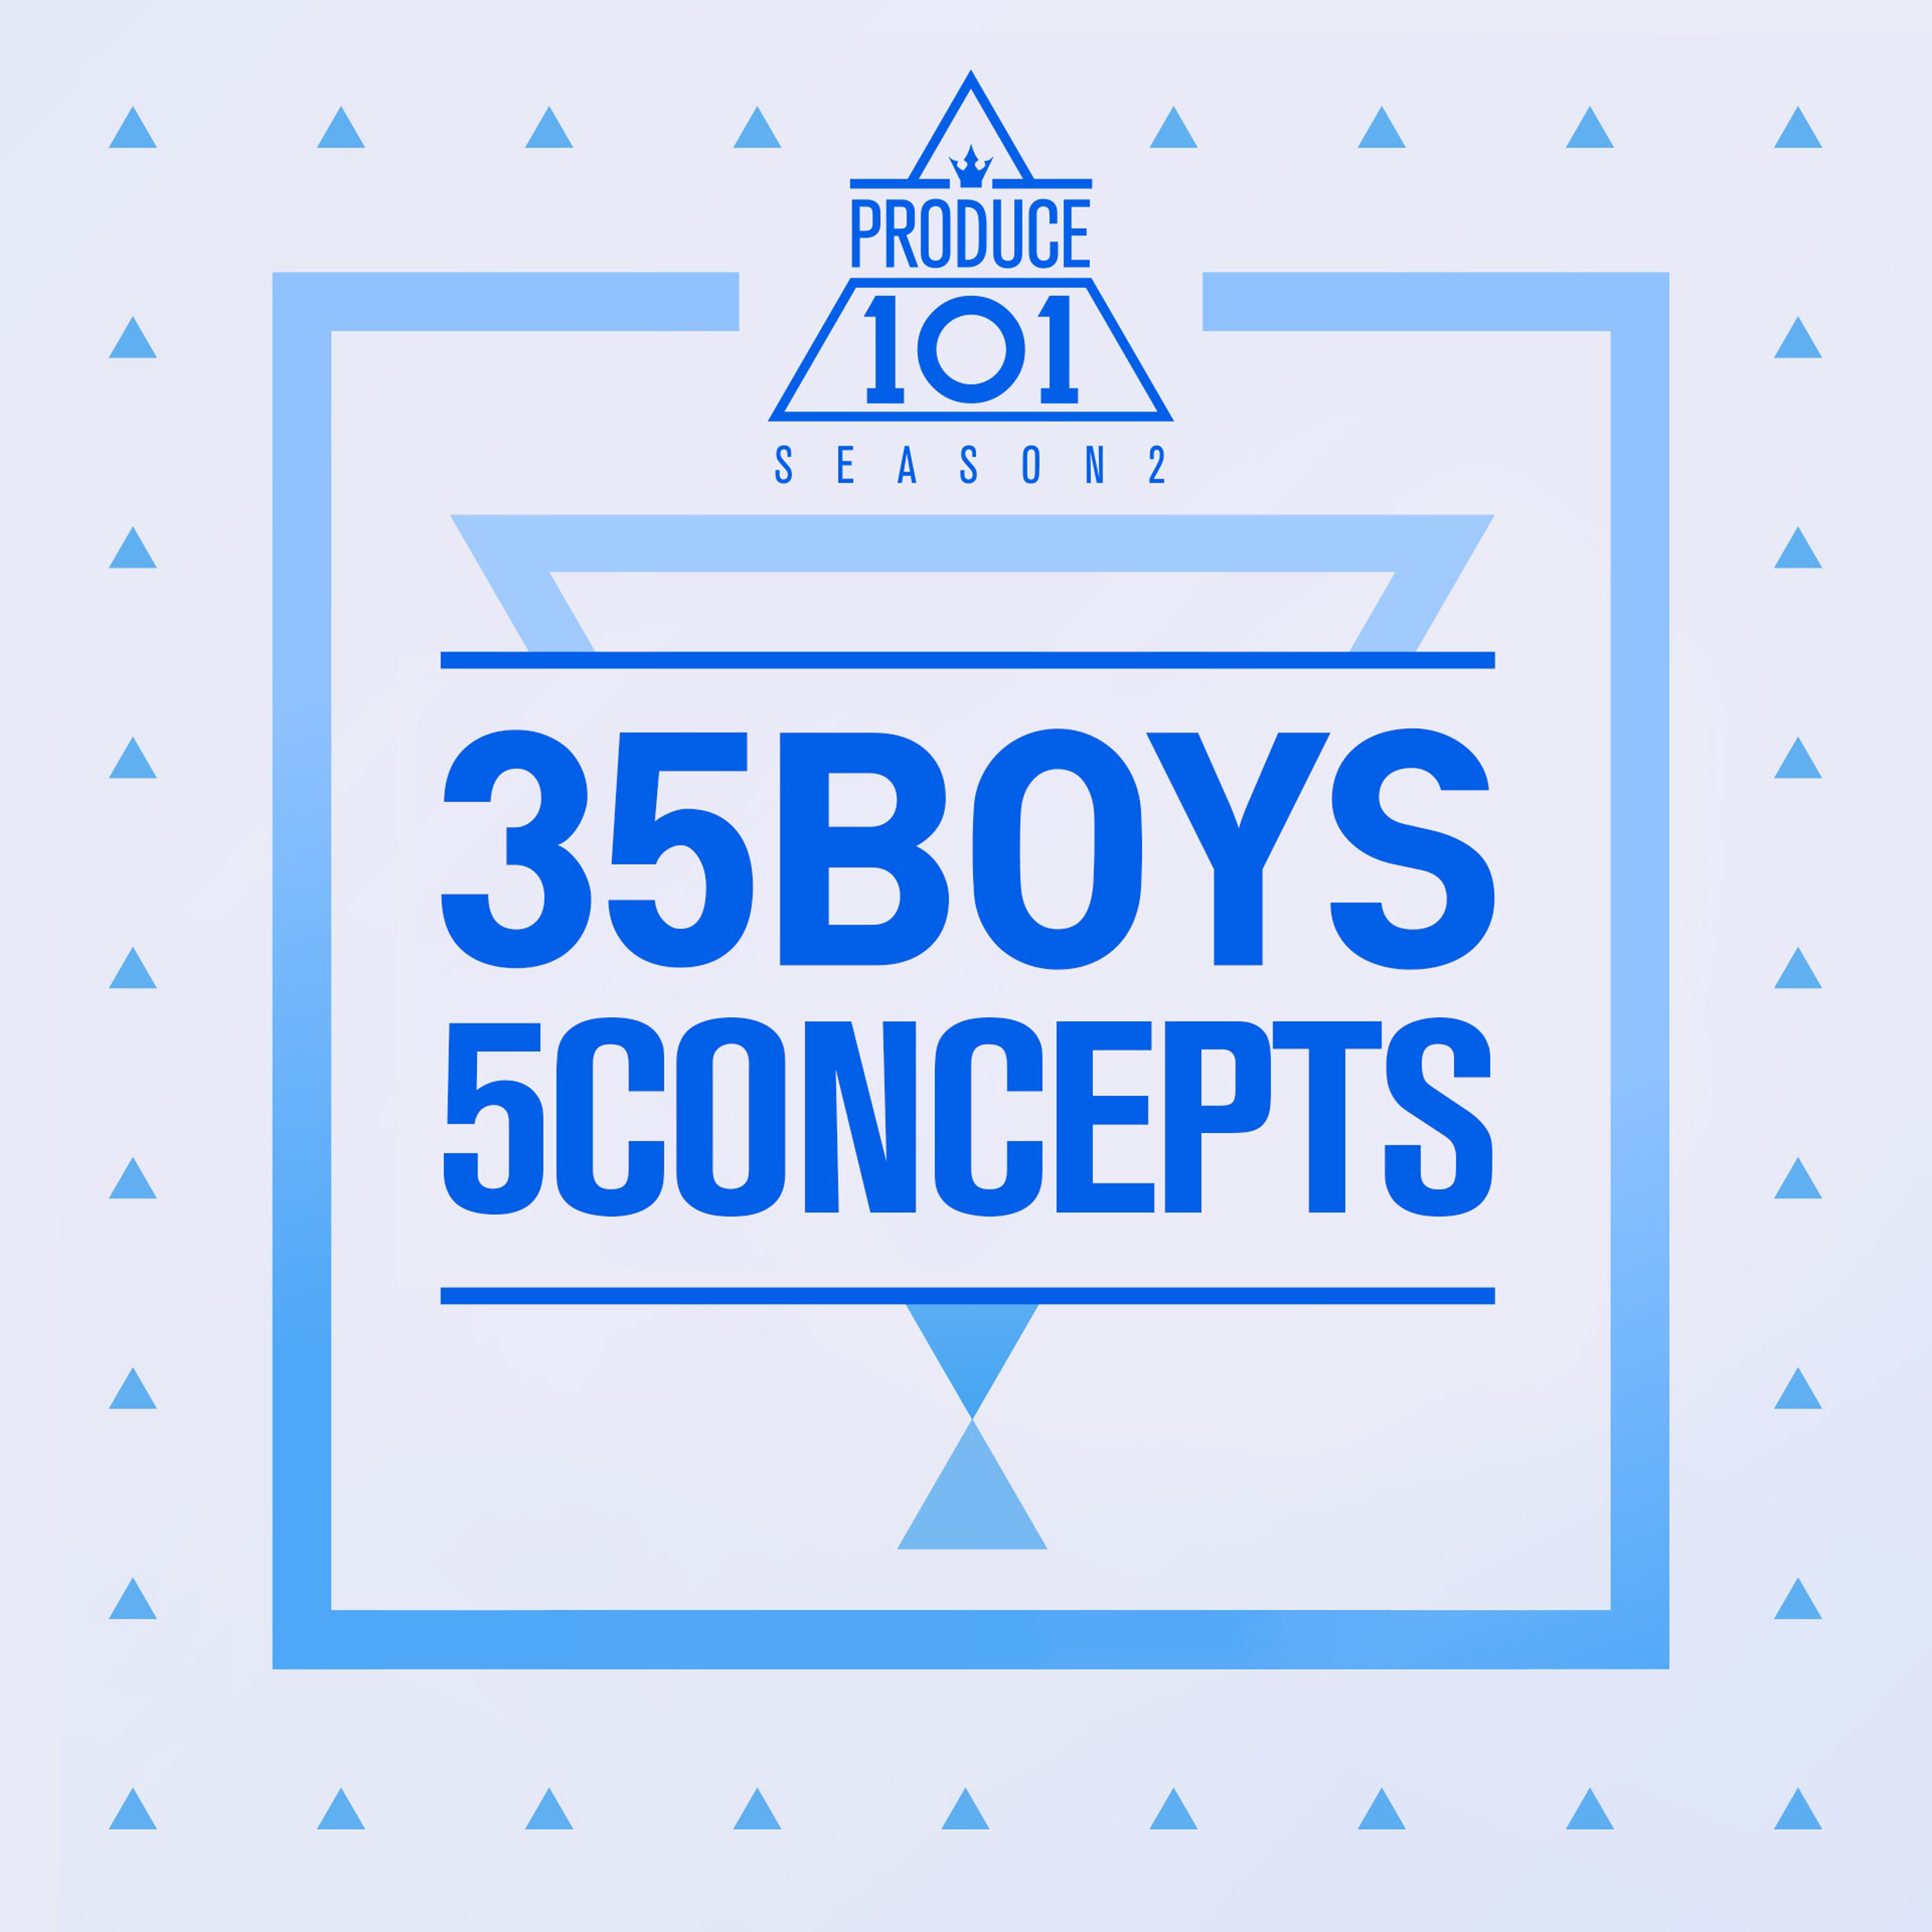 Produce 101: 35 Boys 5 Concepts